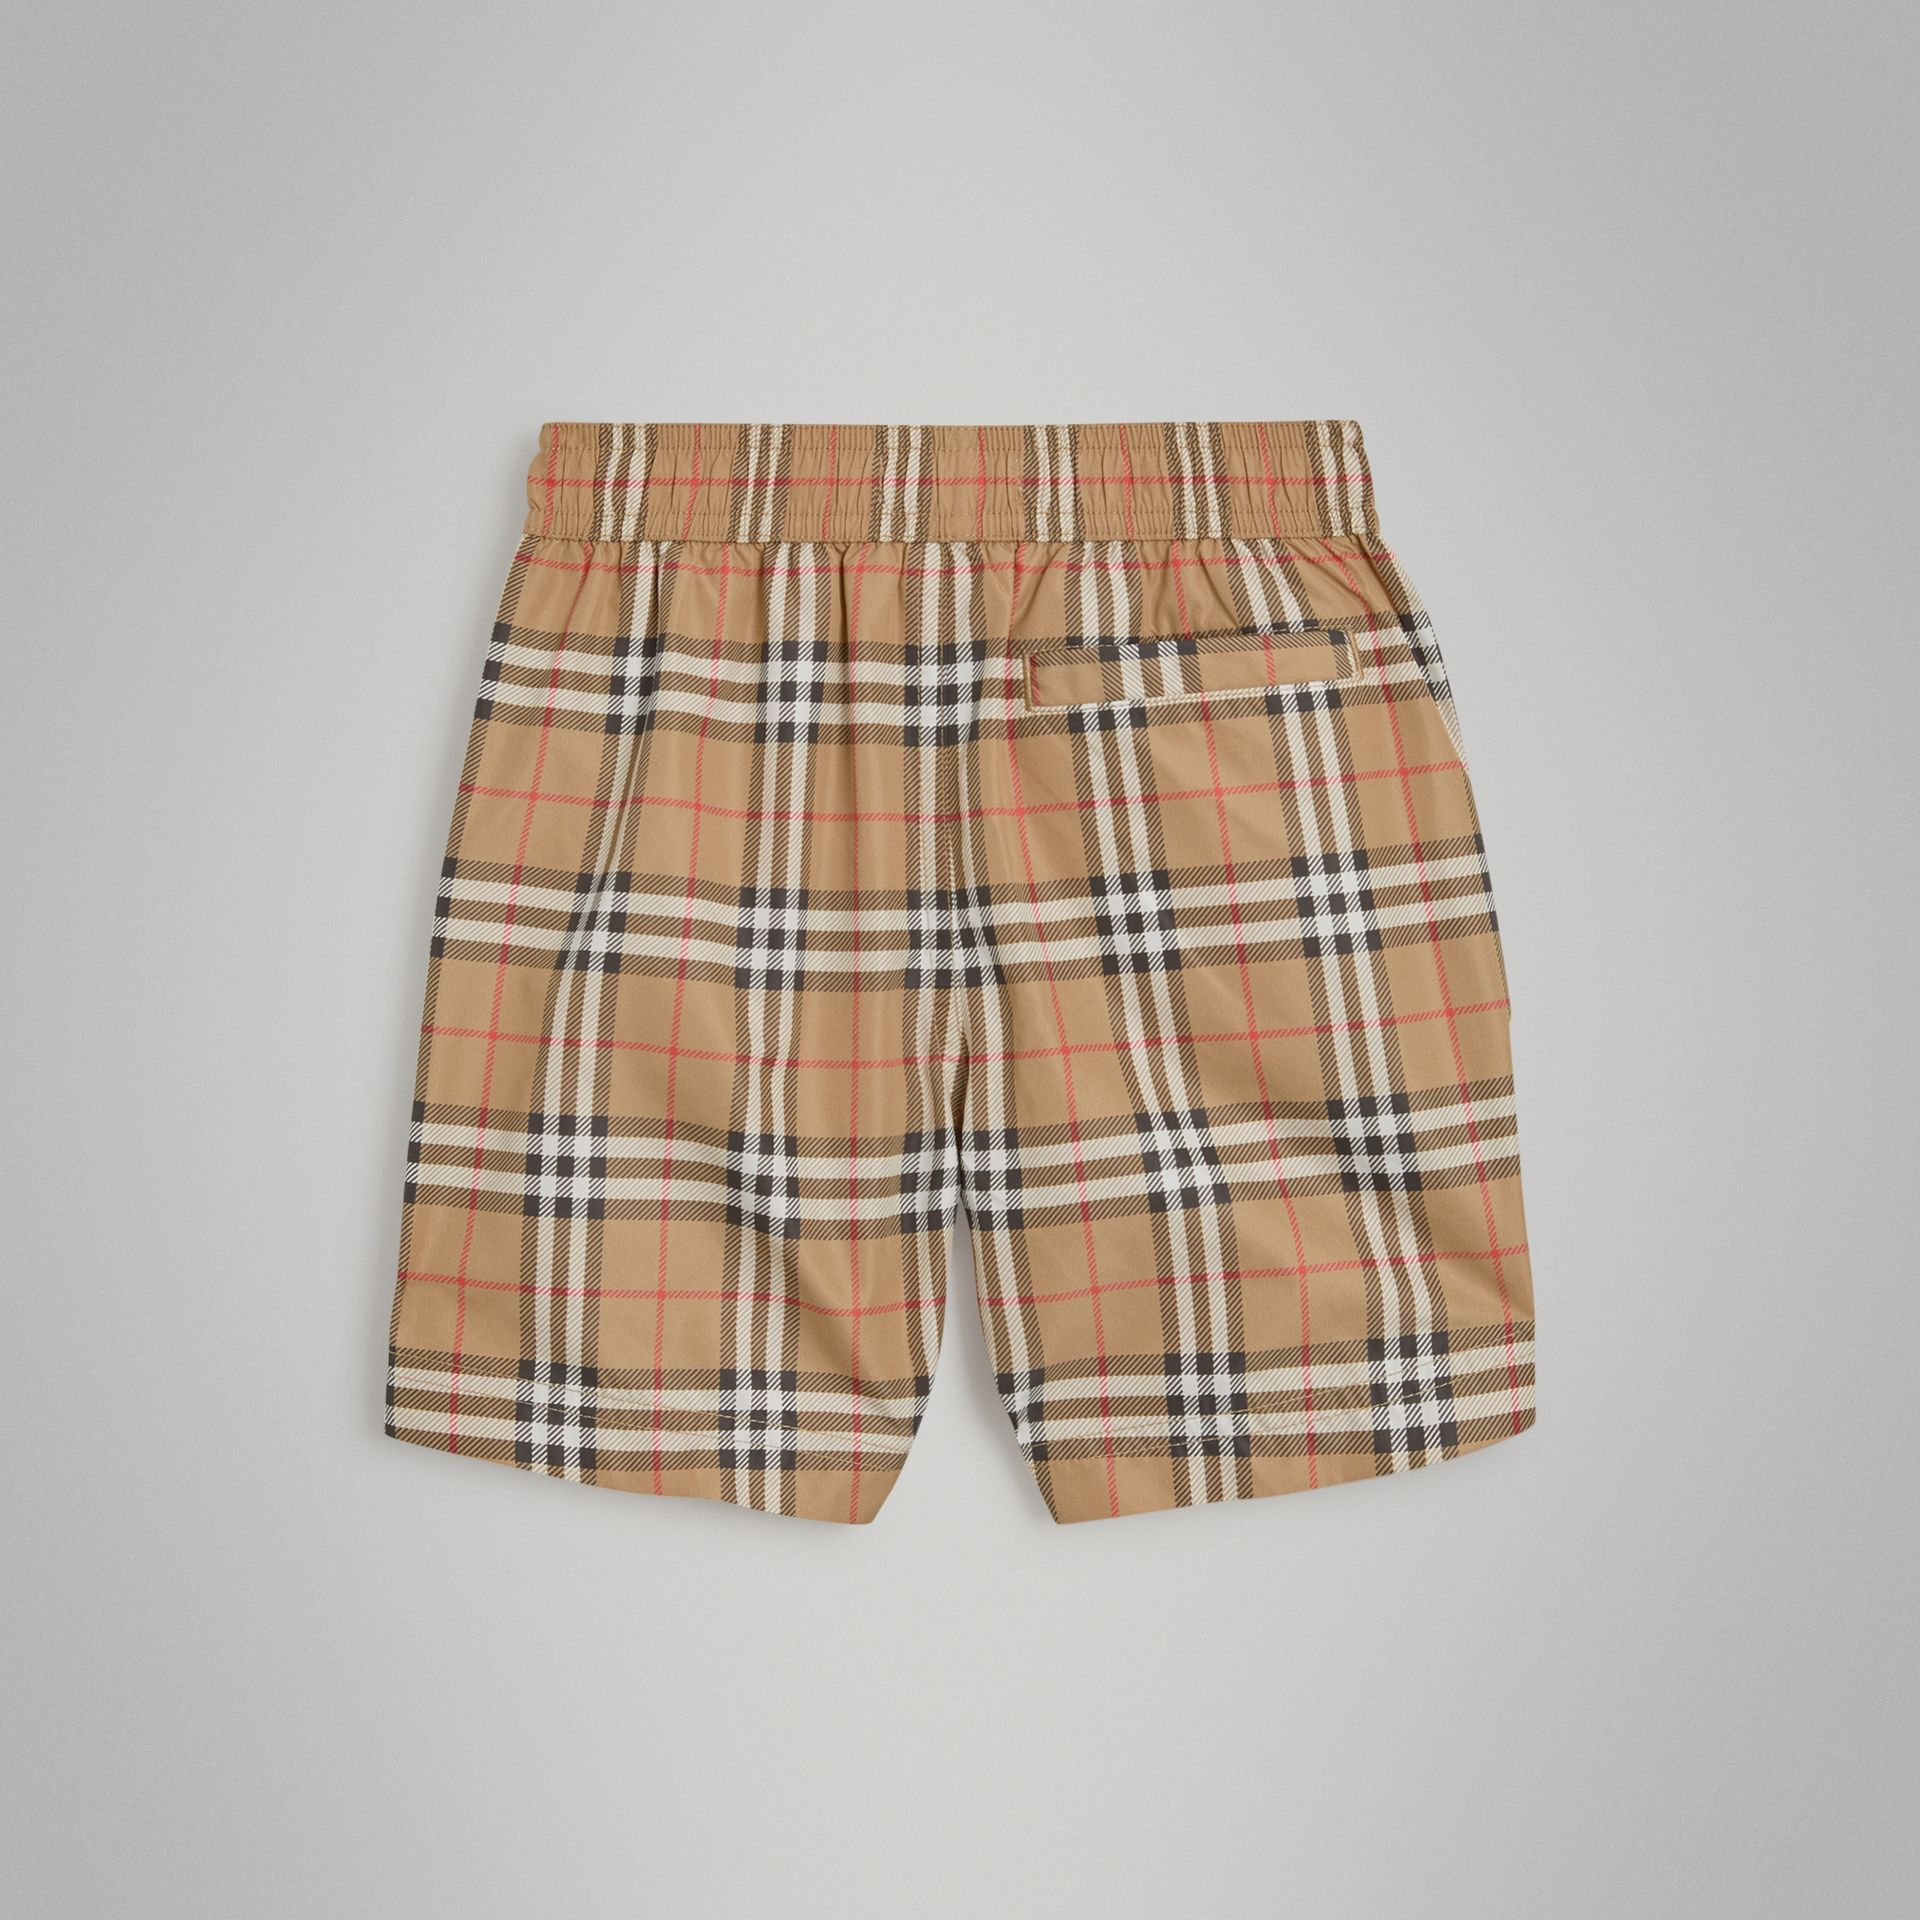 Vintage Check Swim Shorts in Camel | Burberry - gallery image 3